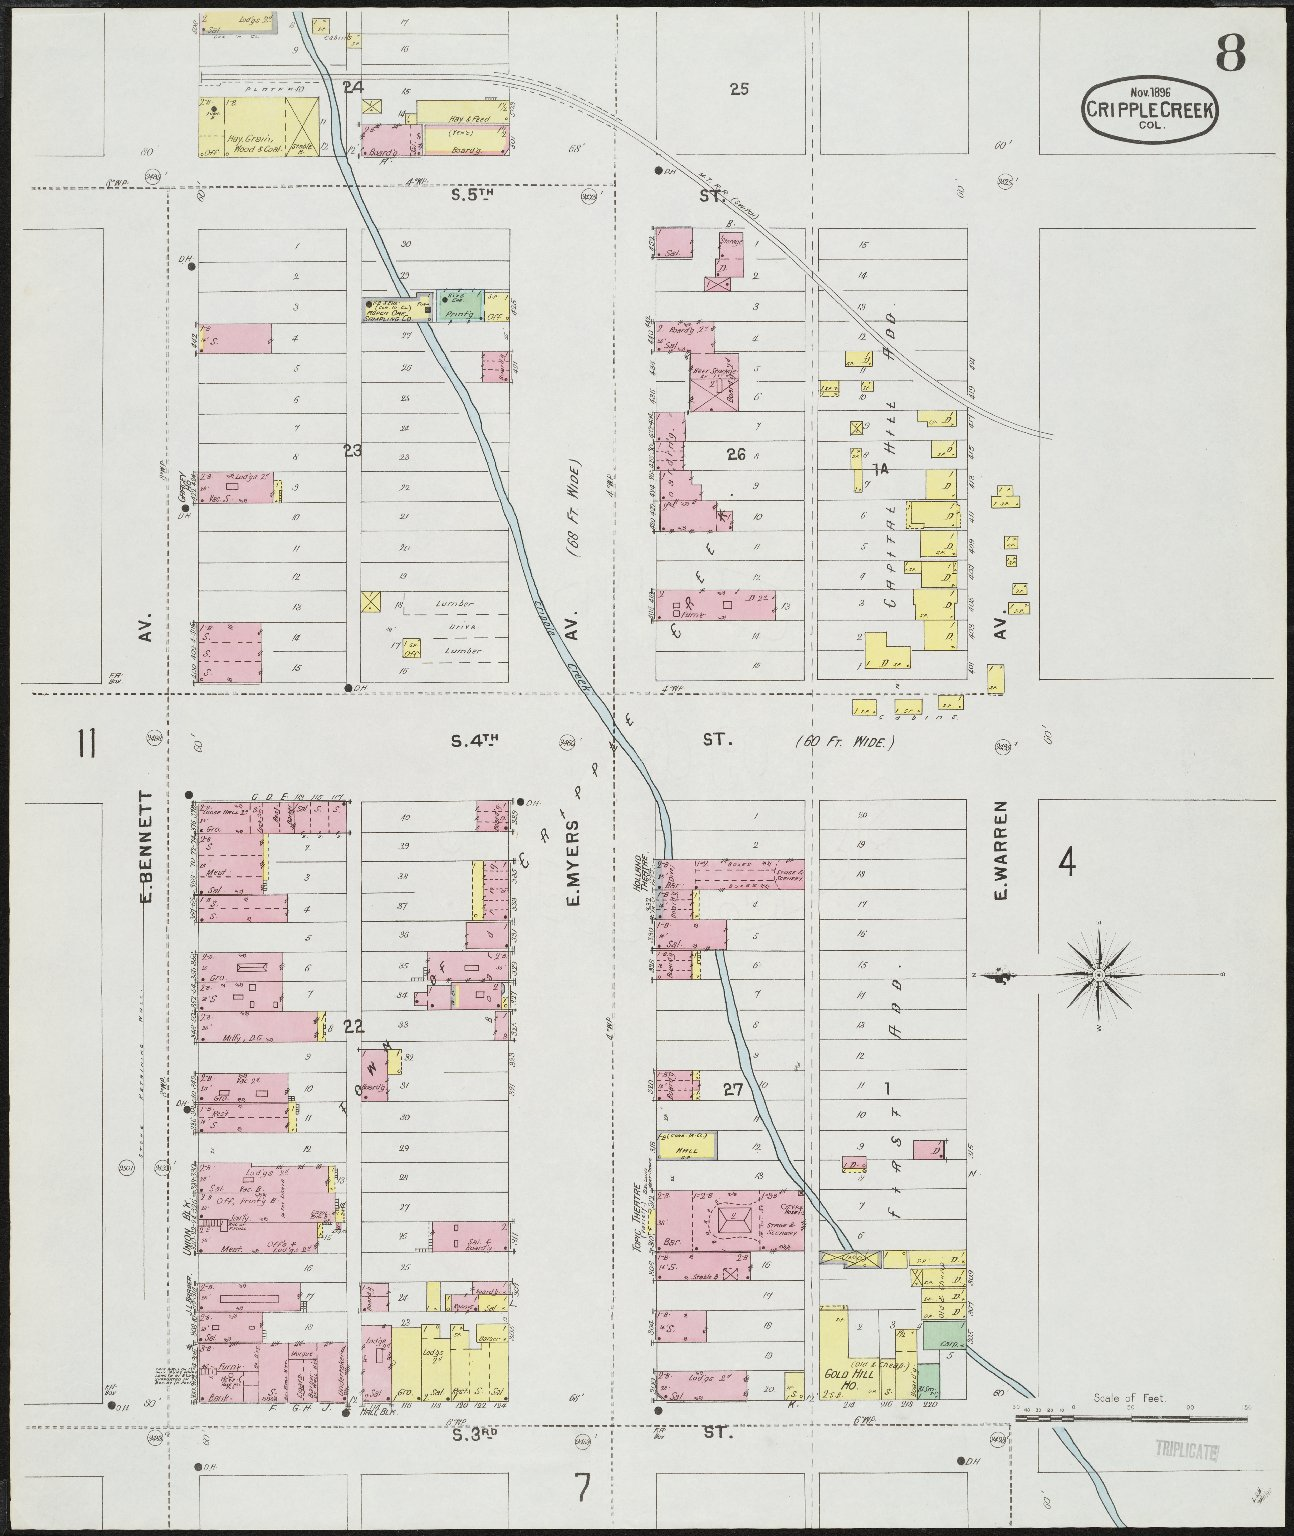 Insurance maps of Cripple Creek, including Anaconda, Gillett, Independence, Goldfield, and Altman, El Paso Co., Colorado